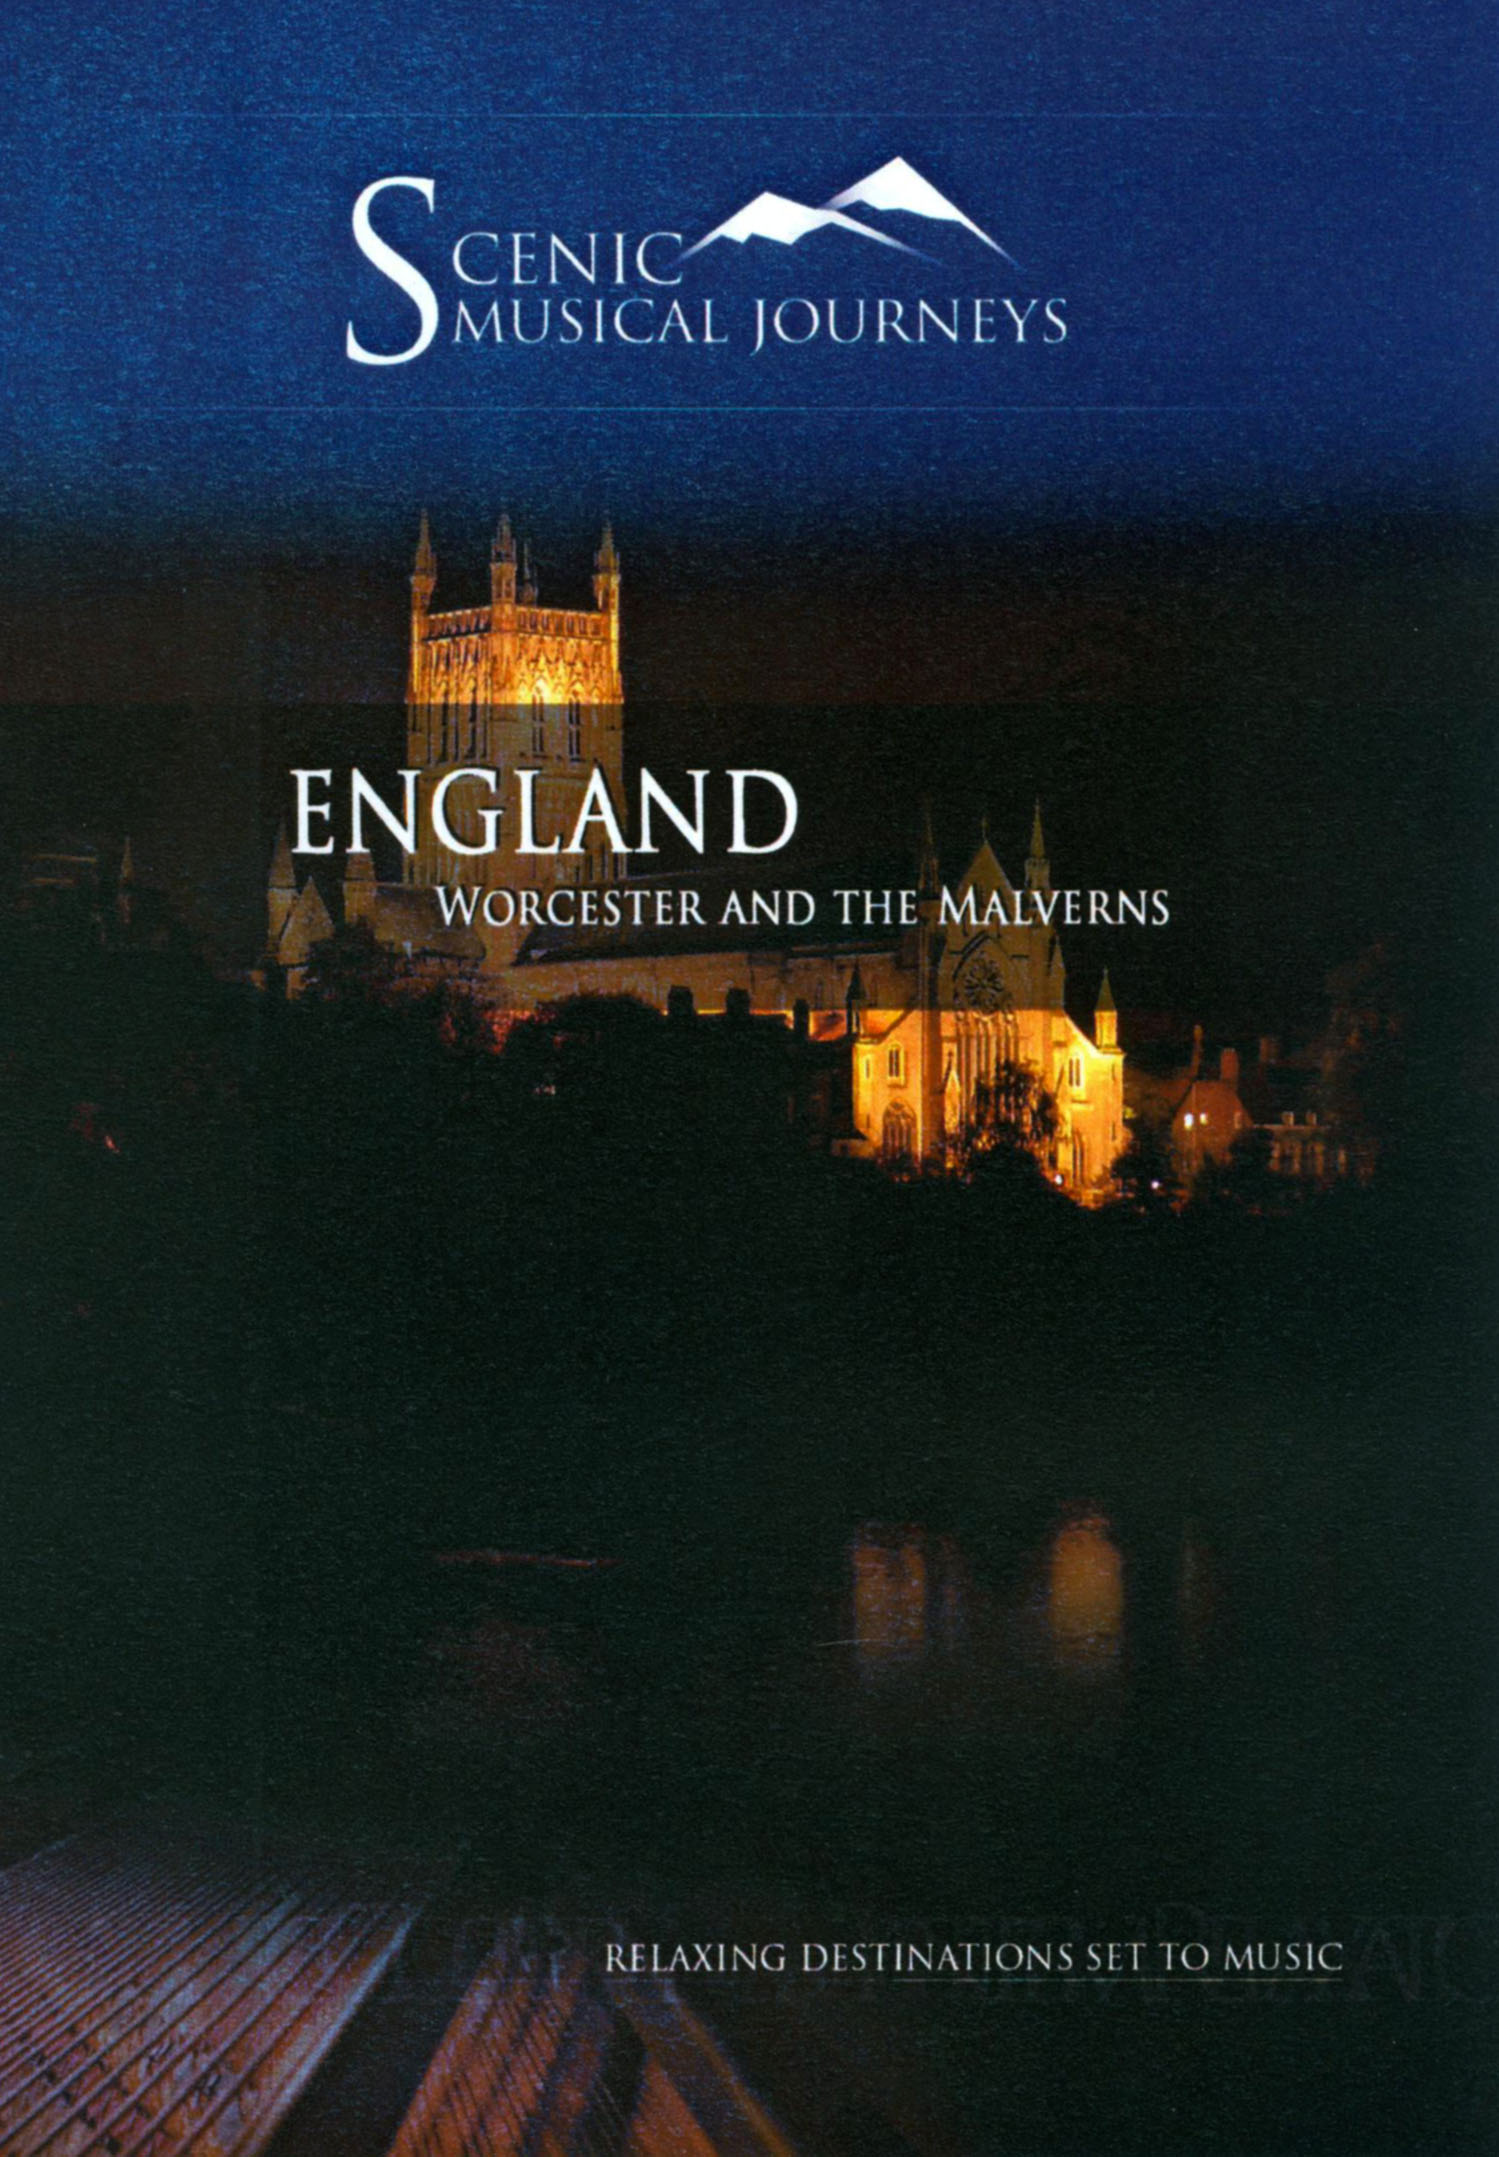 Scenic Musical Journeys: England - Worcester and The Malverns